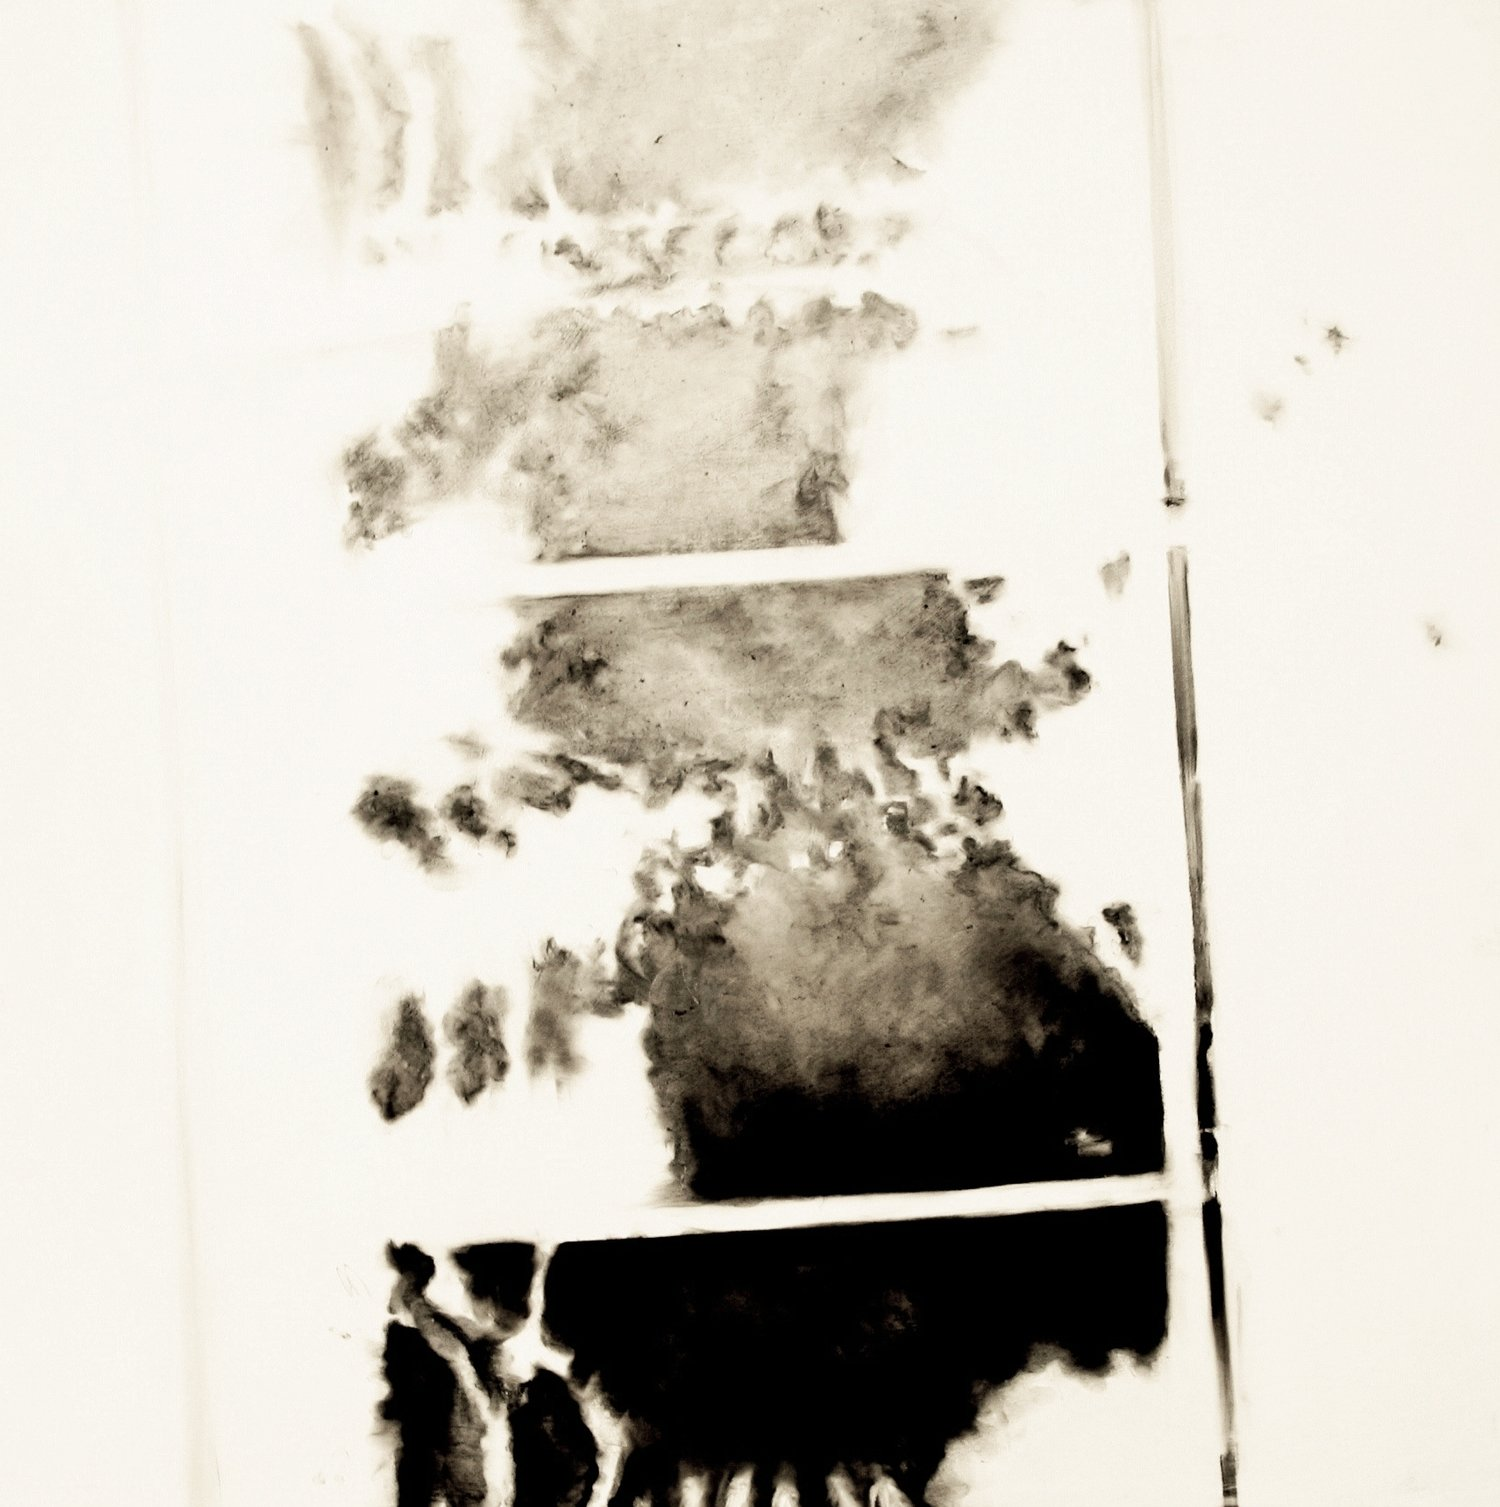 Spinal Intercourse, 36 in. x 36 in., handmade charcoal on canvas 2011